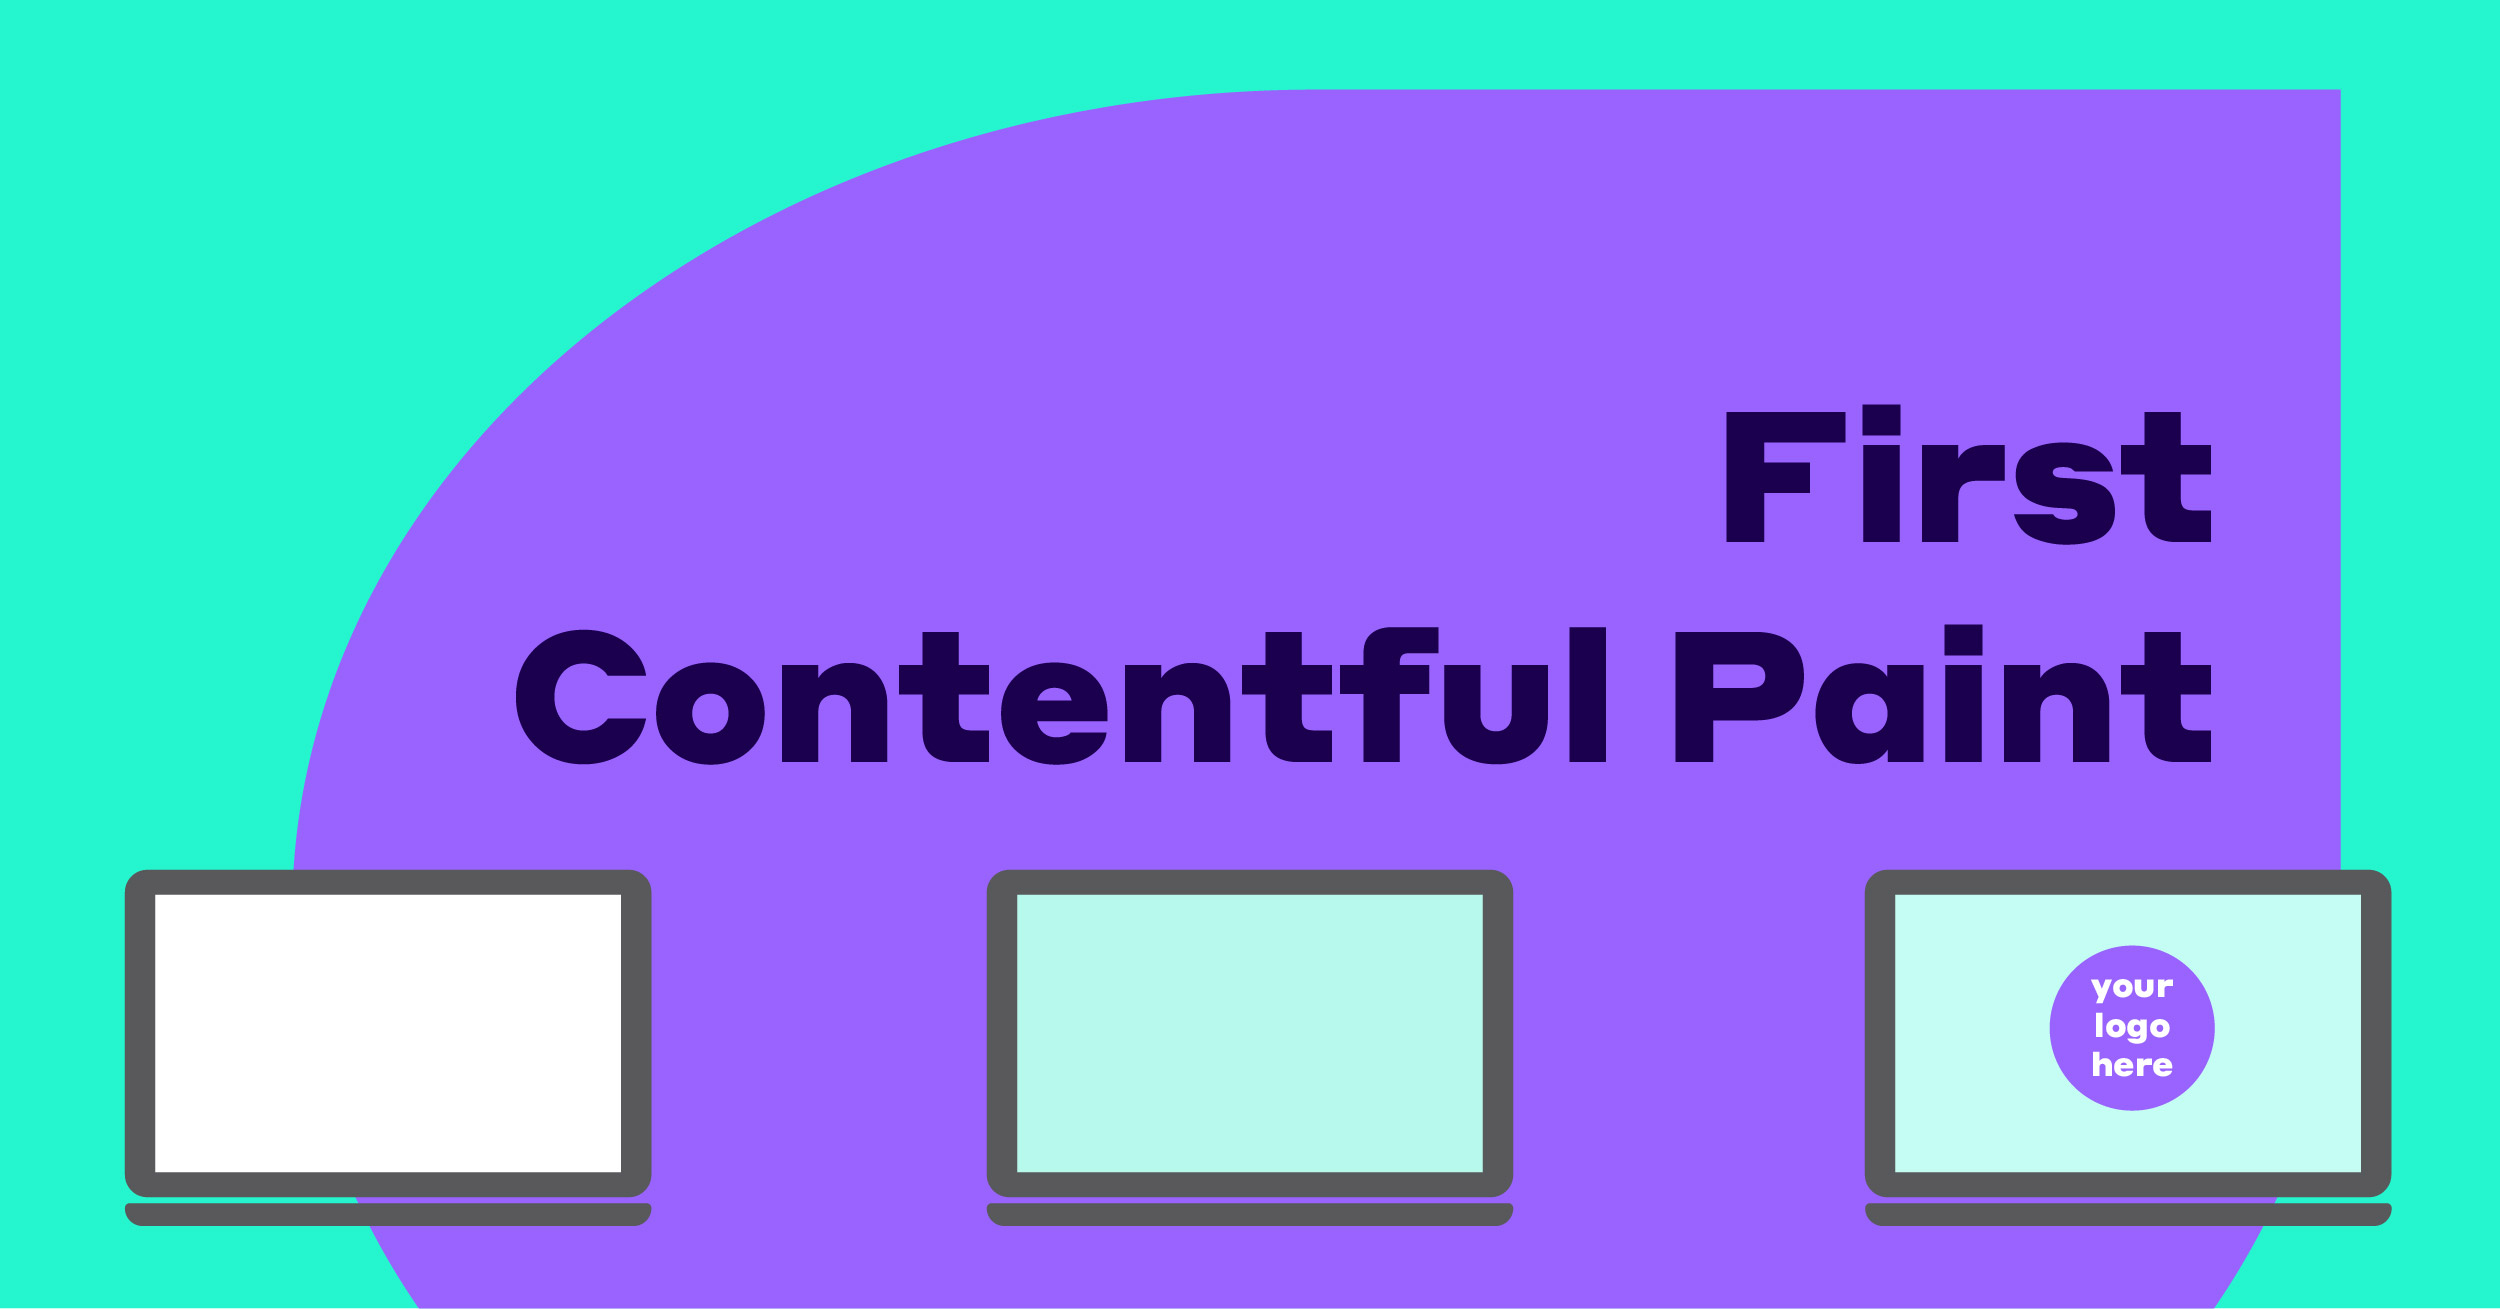 What Is First Contentful Paint (FCP)?